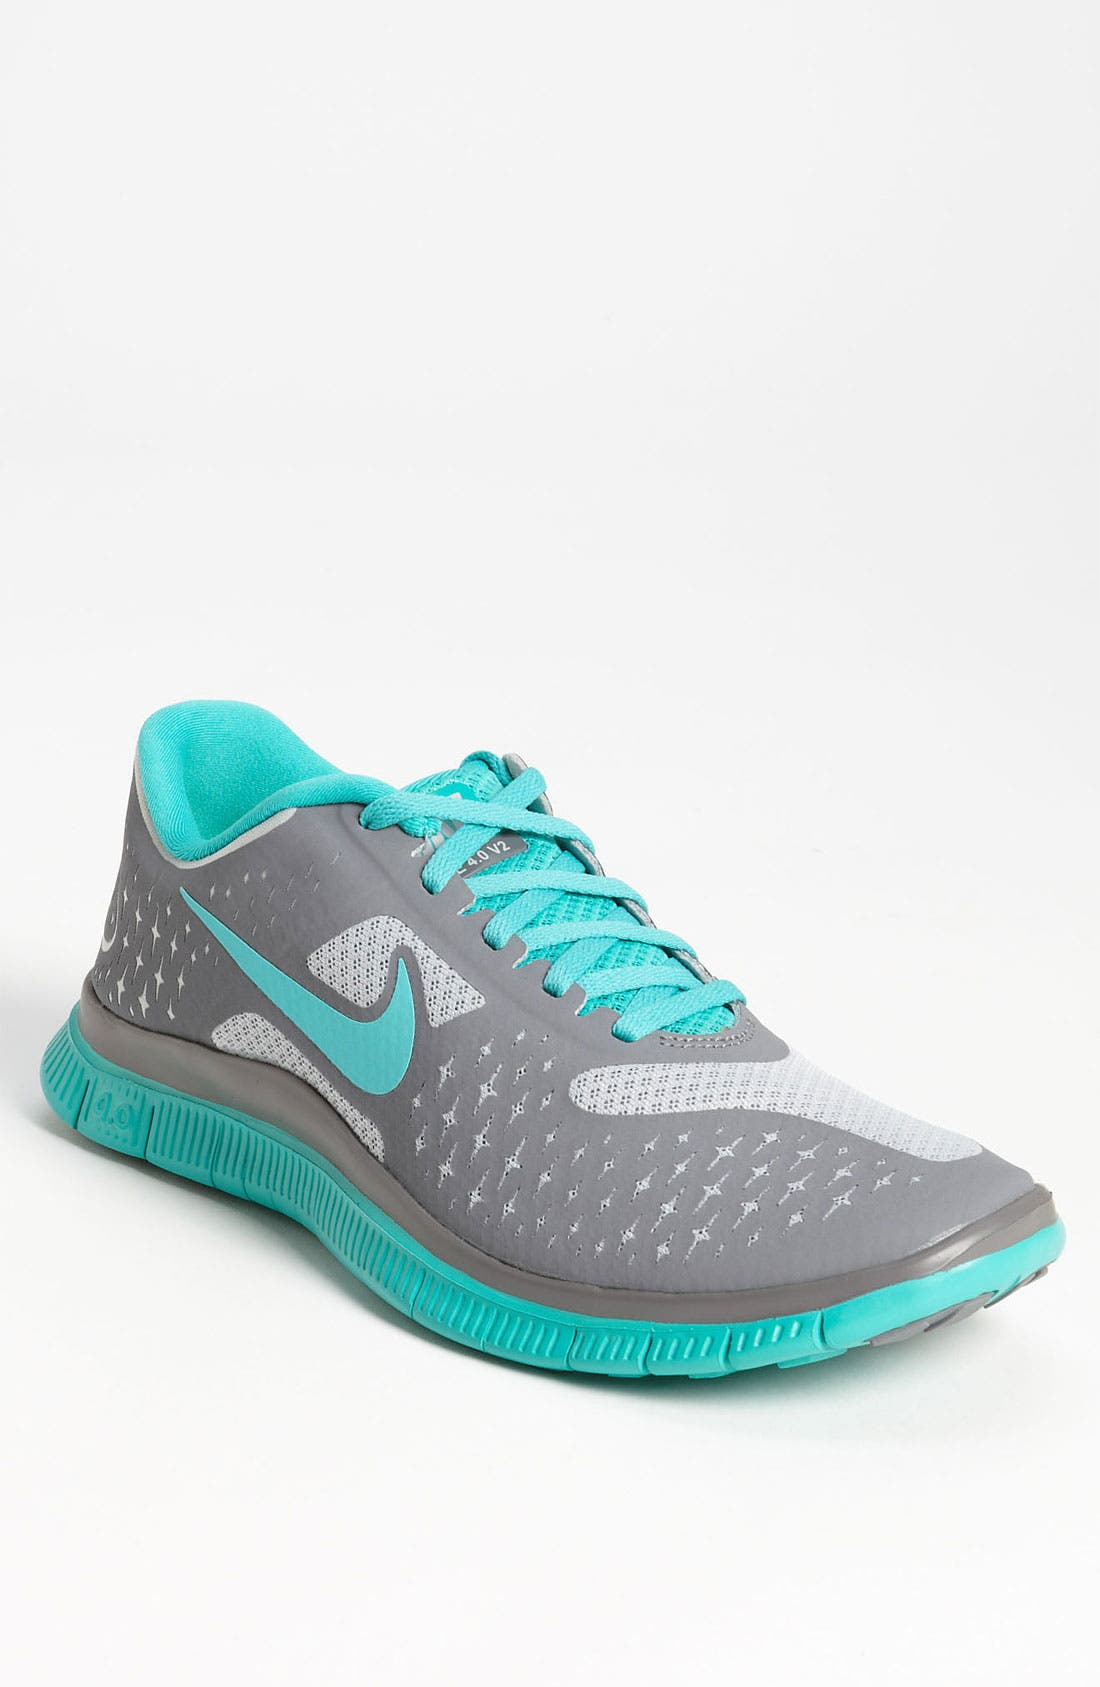 Alternate Image 1 Selected - Nike 'Free V2' Running Shoe (Men)